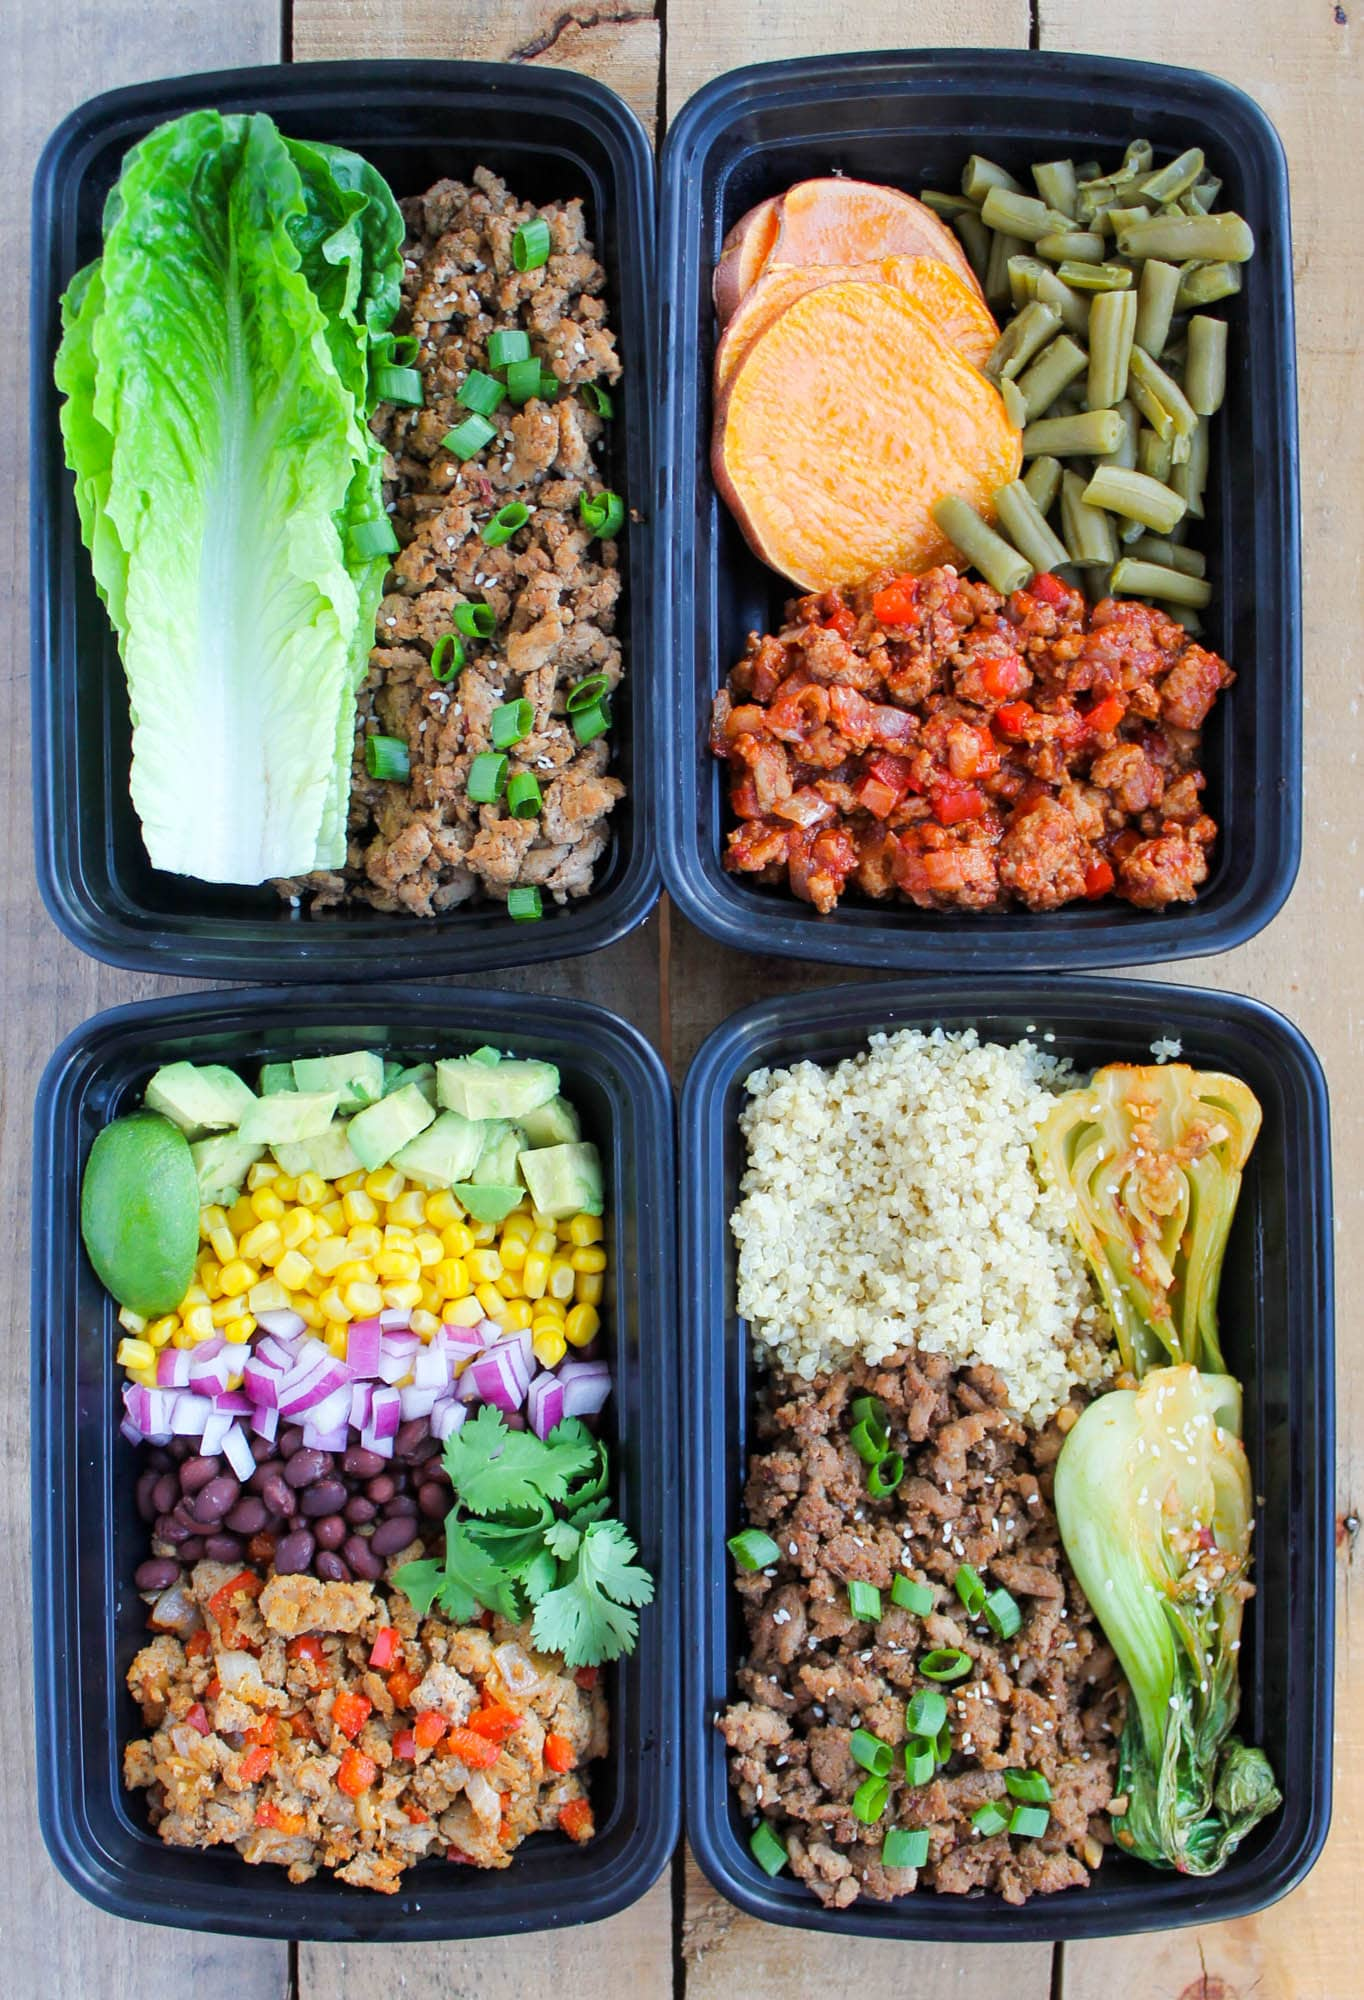 Easy Ground Turkey Meal Prep Bowls 4 Ways Smile Sandwich